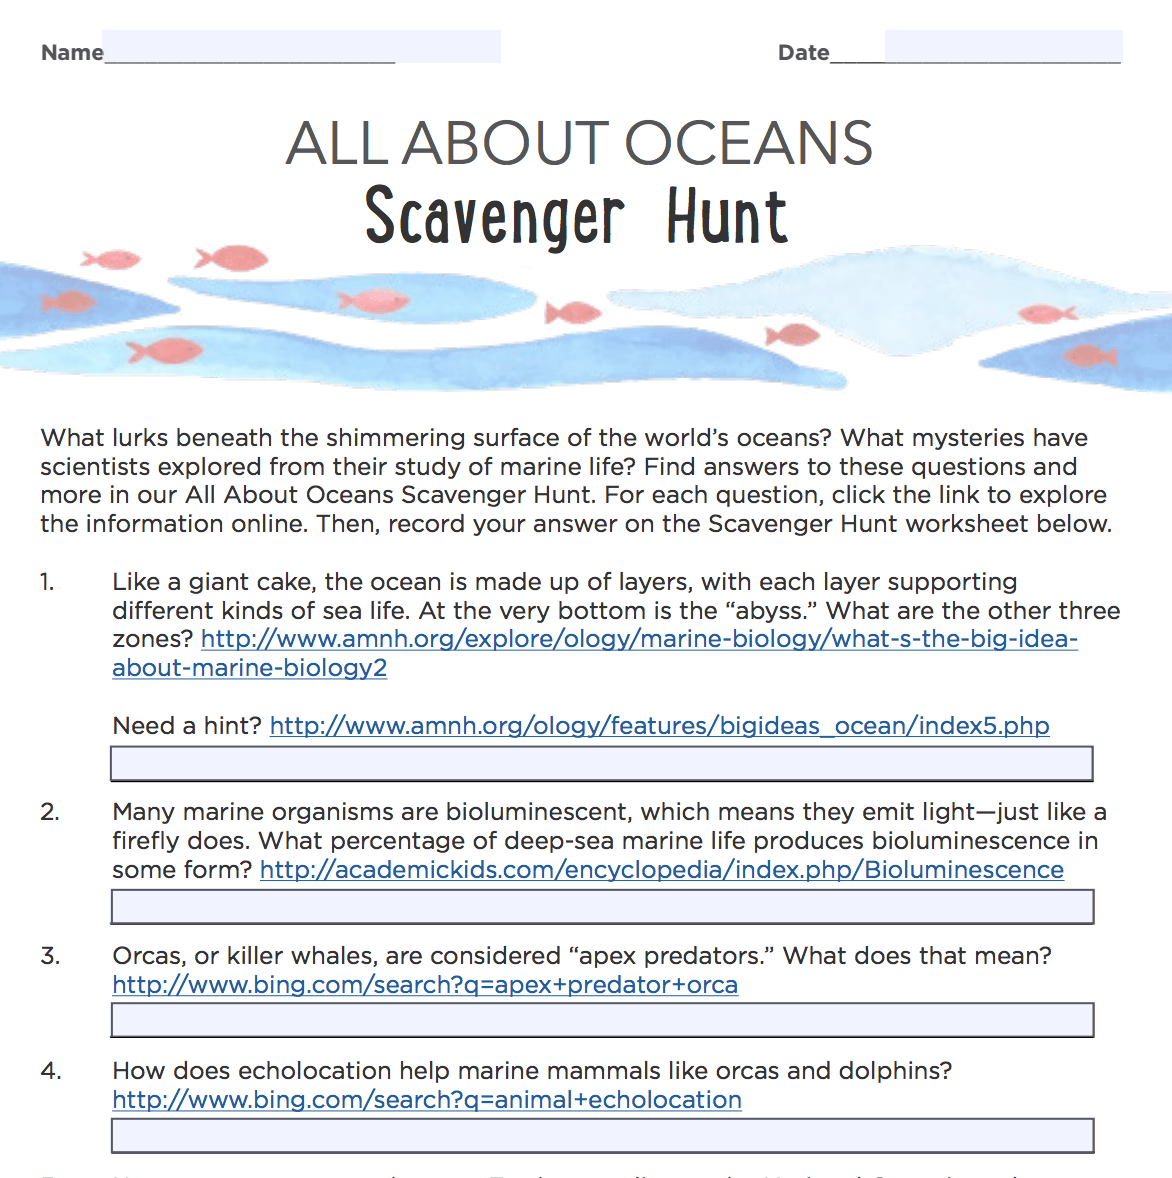 Online Activity All About Oceans Scavenger Hunt